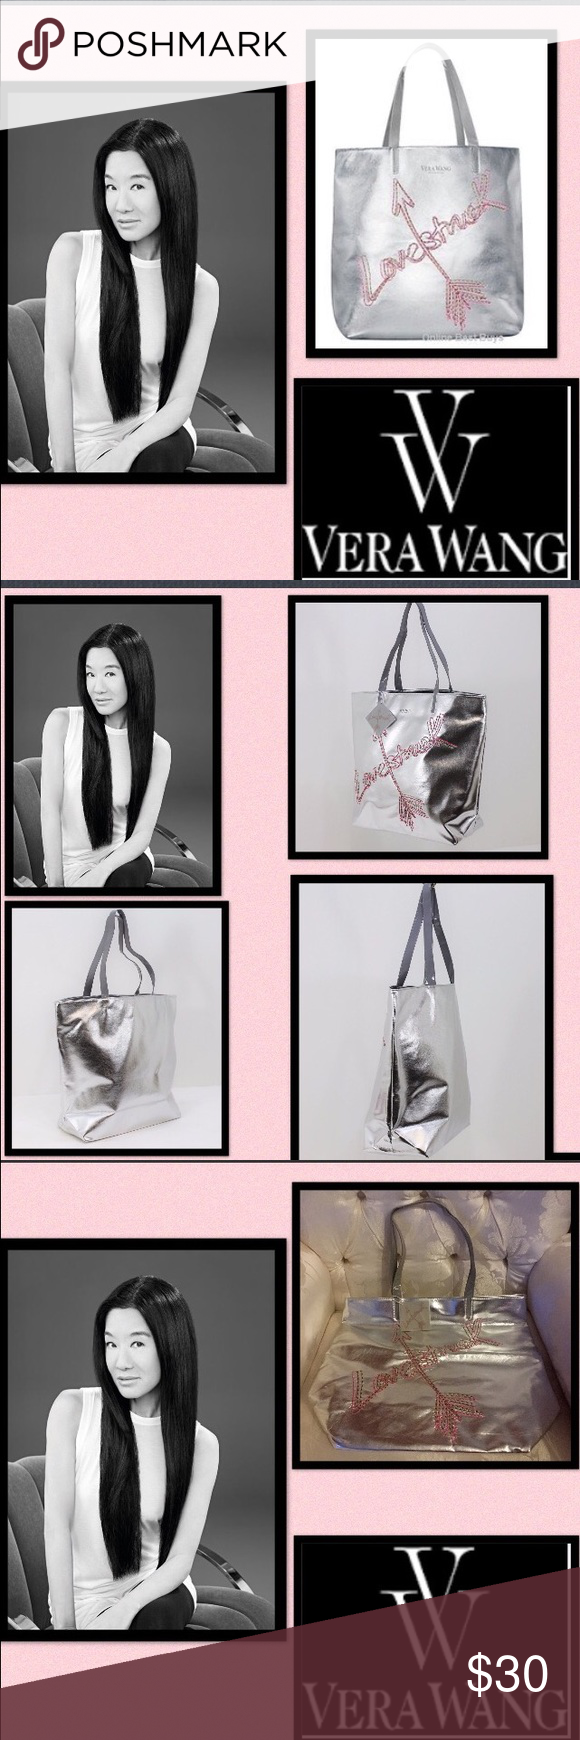 """🆕Vera Wang💘Love💘Struck💘Metallic Tote When the moon hits ur eye like a big pizza pie💘thats Amore💘You'll be love struck carrying this chic bag 💘Metallic Silver  Faux Leather 💘""""Lovestruck"""" embroided on front 💘Vera Wang Fragrances printed on top  💘2 High Gloss Patent Carry Handles 💘Fully Lined Wipe clean material  💘Flat based for easy storage  💘magnetic snap closure  Measures 16.5 x 14 x 5.5 inches Vera Wang Bags Totes"""